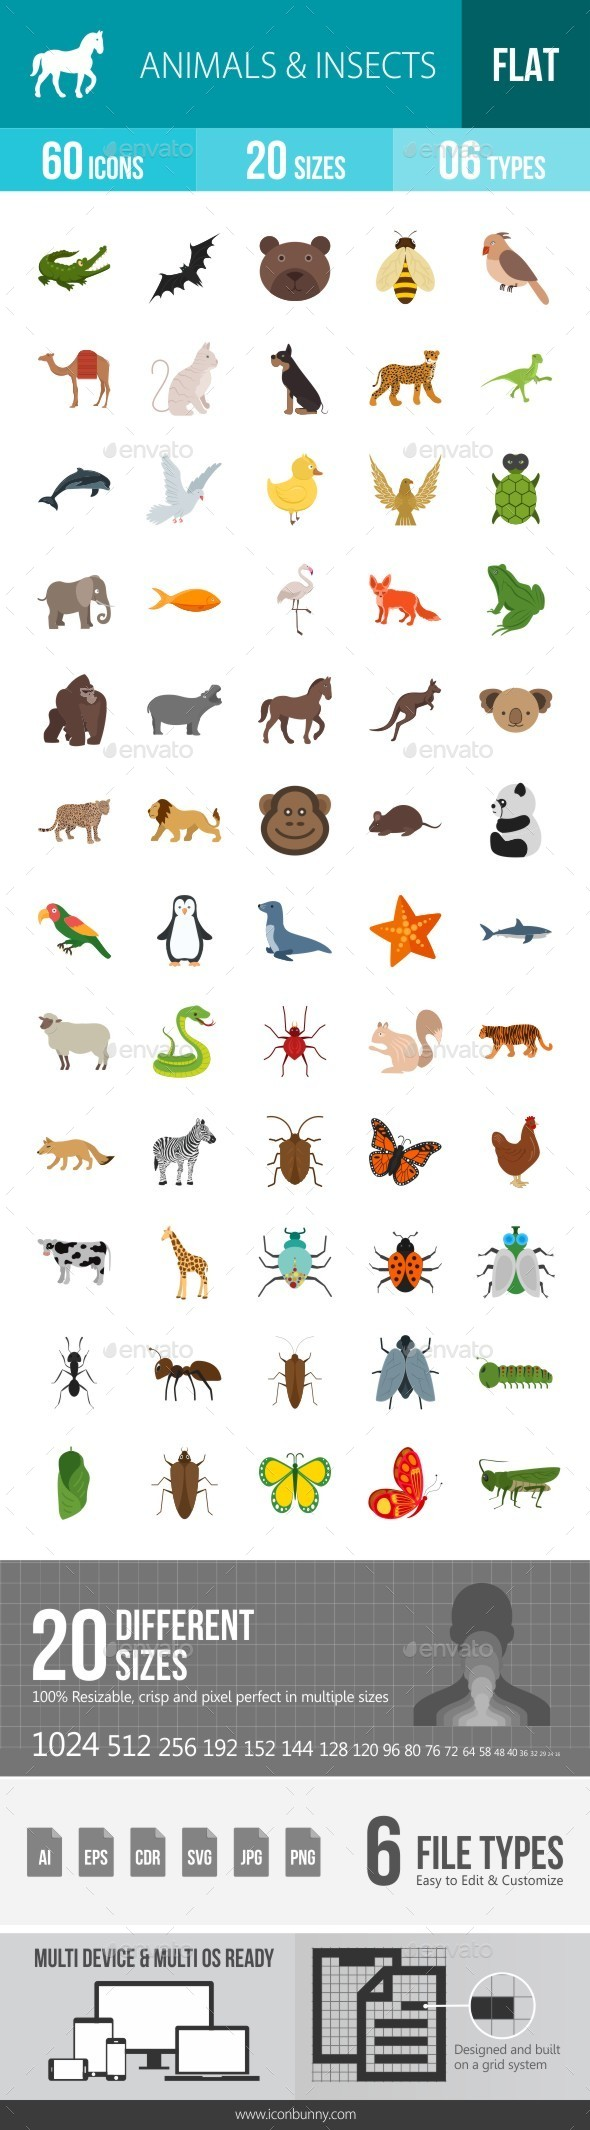 Animals & Insects Flat Multicolor Icons - Icons